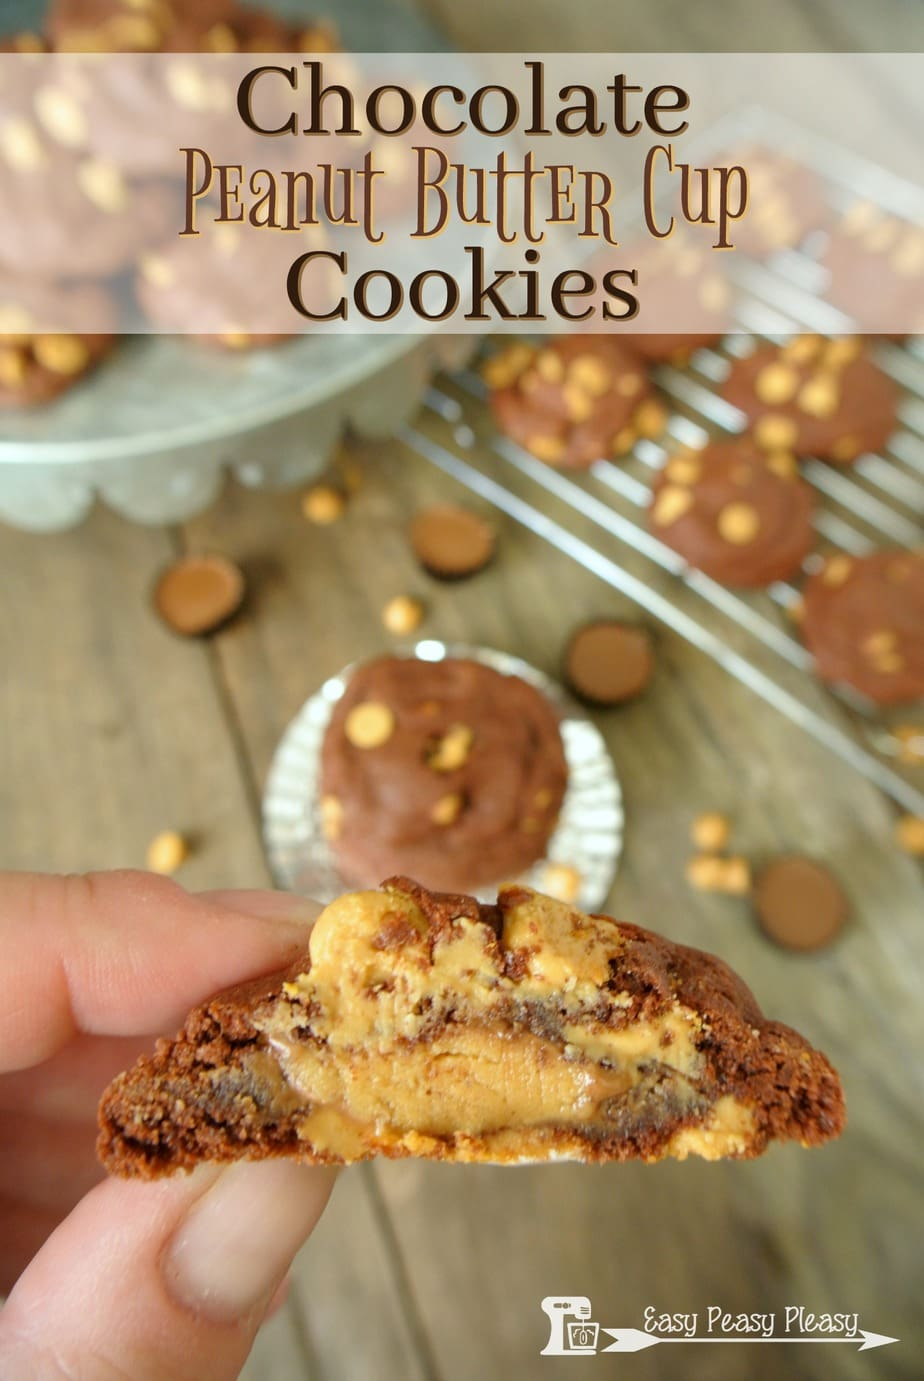 Only 5 Ingredients. Chocolate Peanut Butter Cookies using a cake mix.